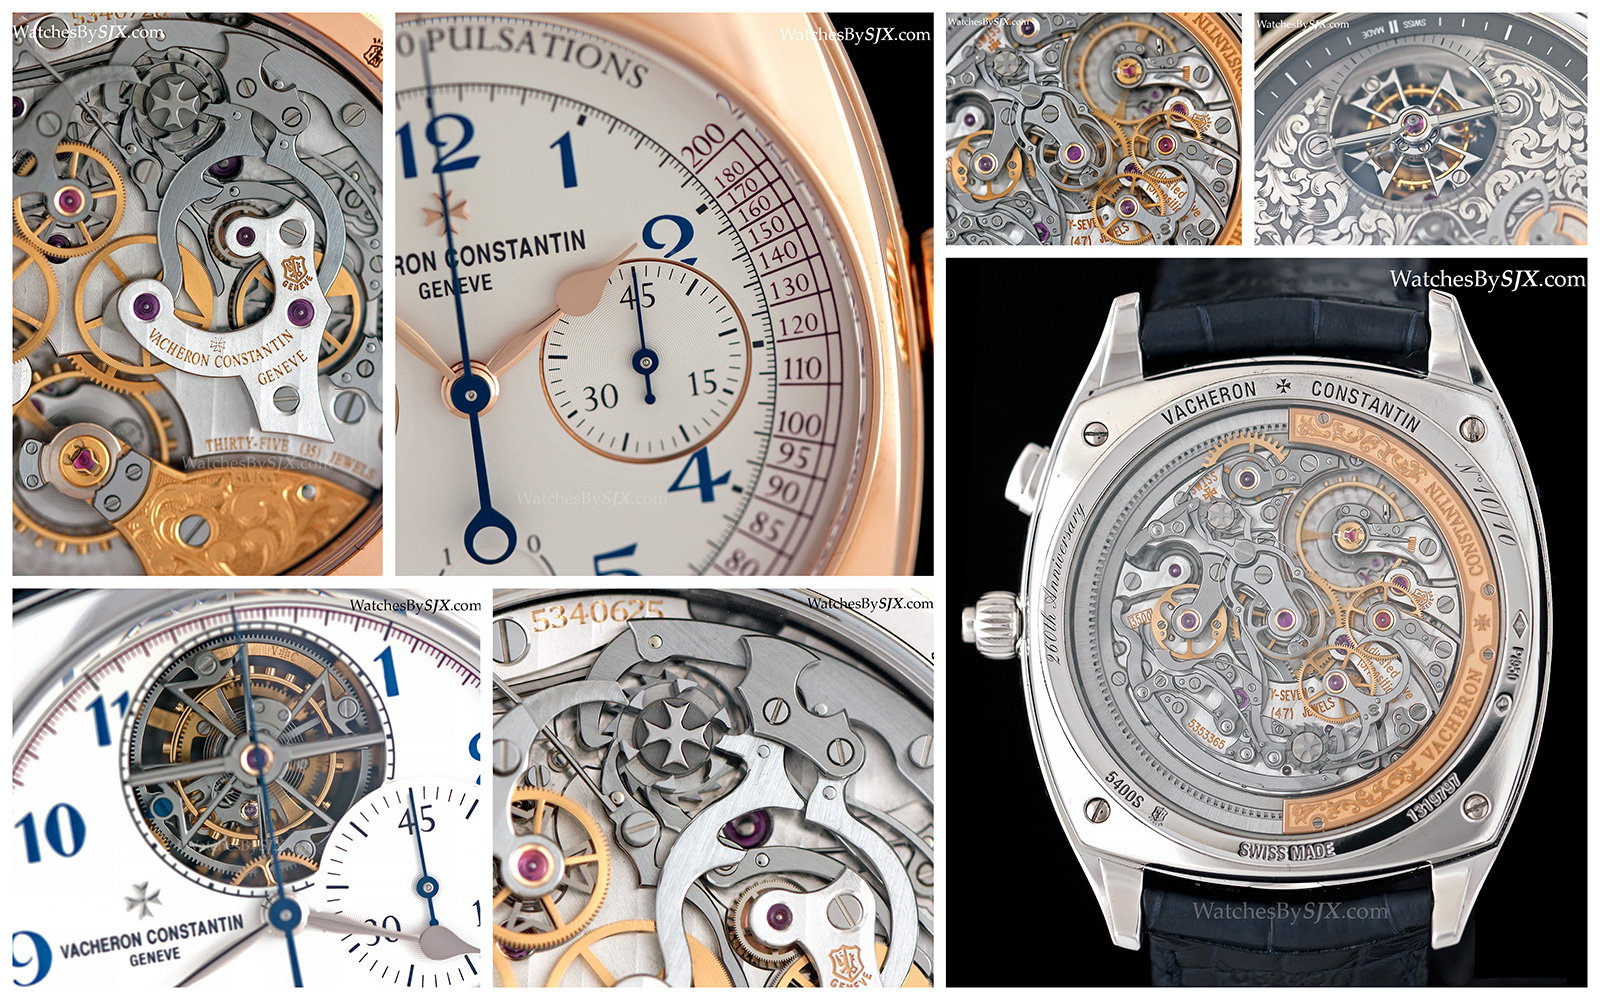 Vacheron-Constantin-SIHH-2015-collage1